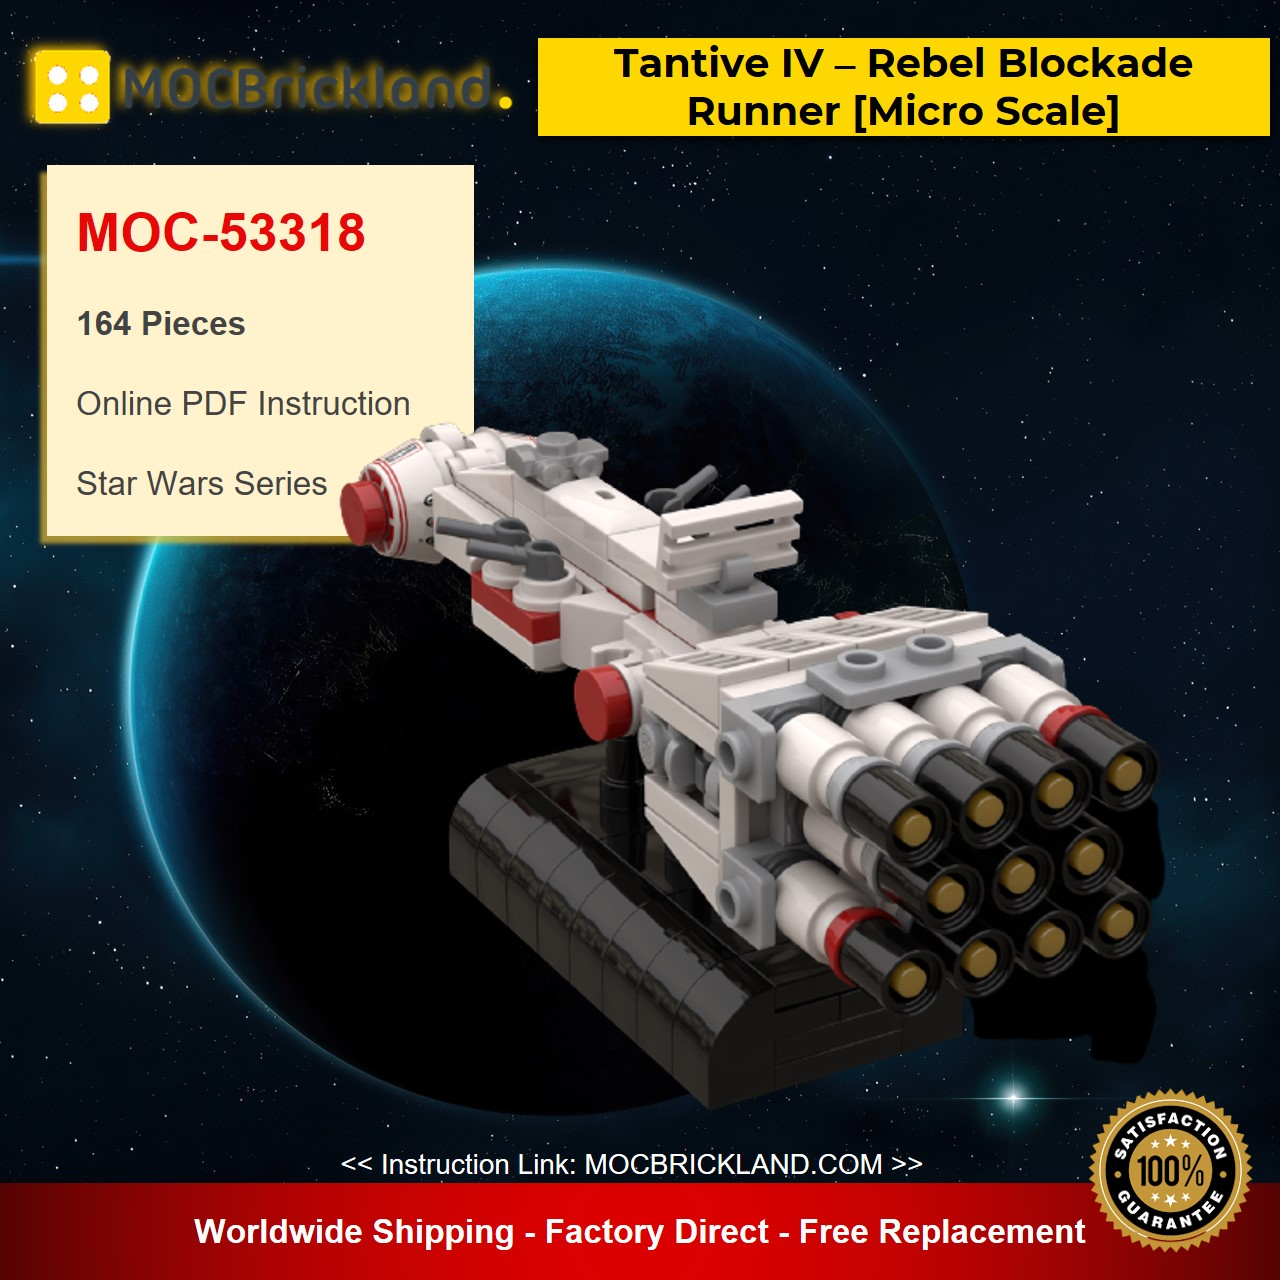 MOC-53318 Star Wars Tantive IV – Rebel Blockade Runner [Micro Scale] Designed By Xigphir With 164 Pieces